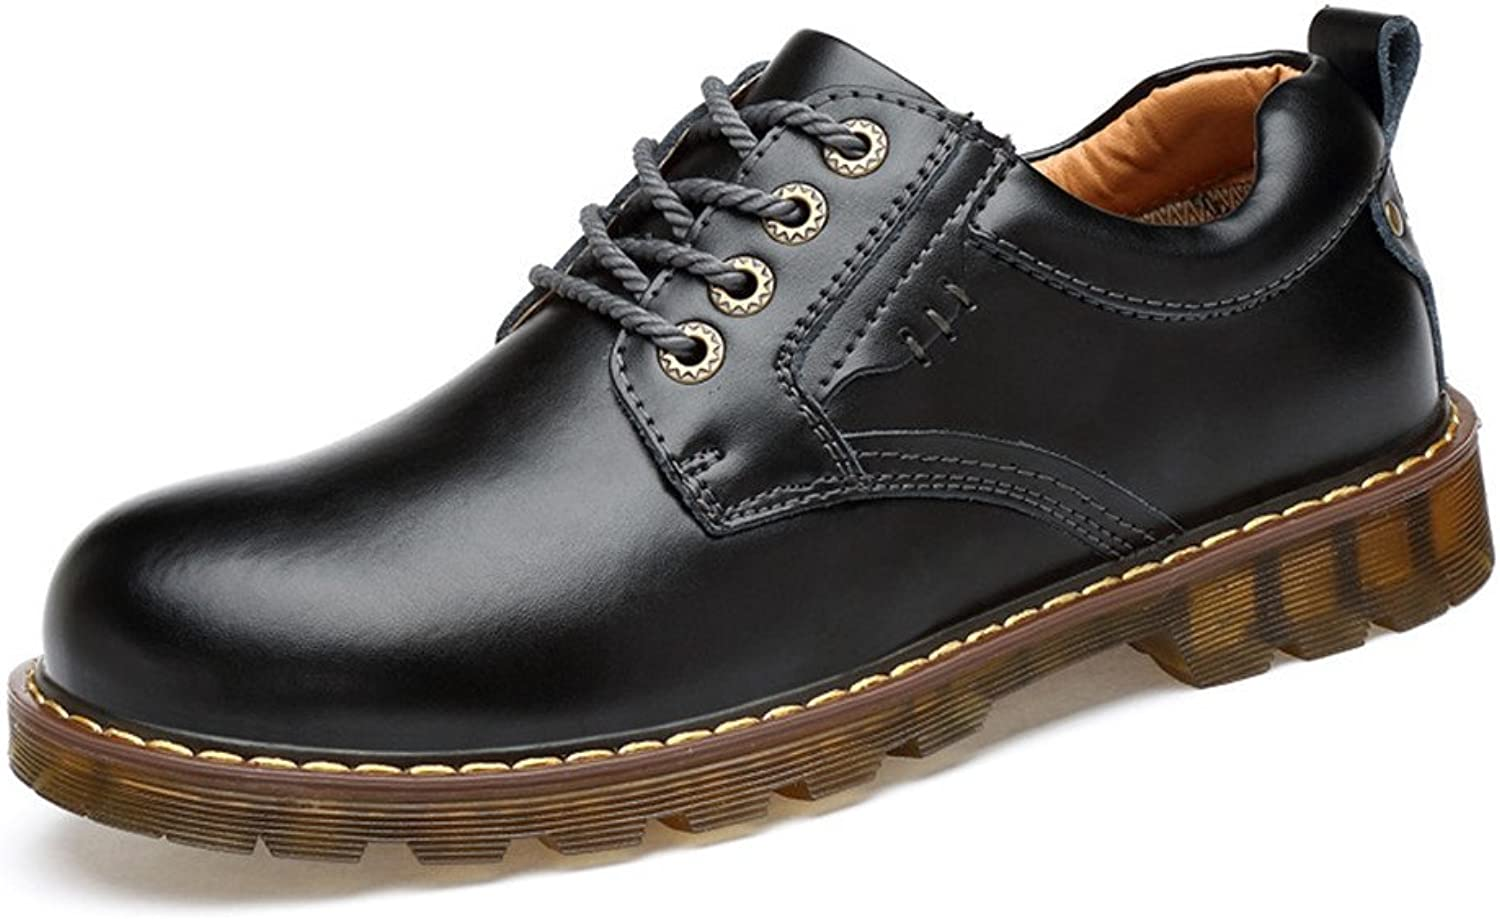 Fgmjgk Men's casual shoes casual shoes leather casual shoes all-match,black,Thirty-eight